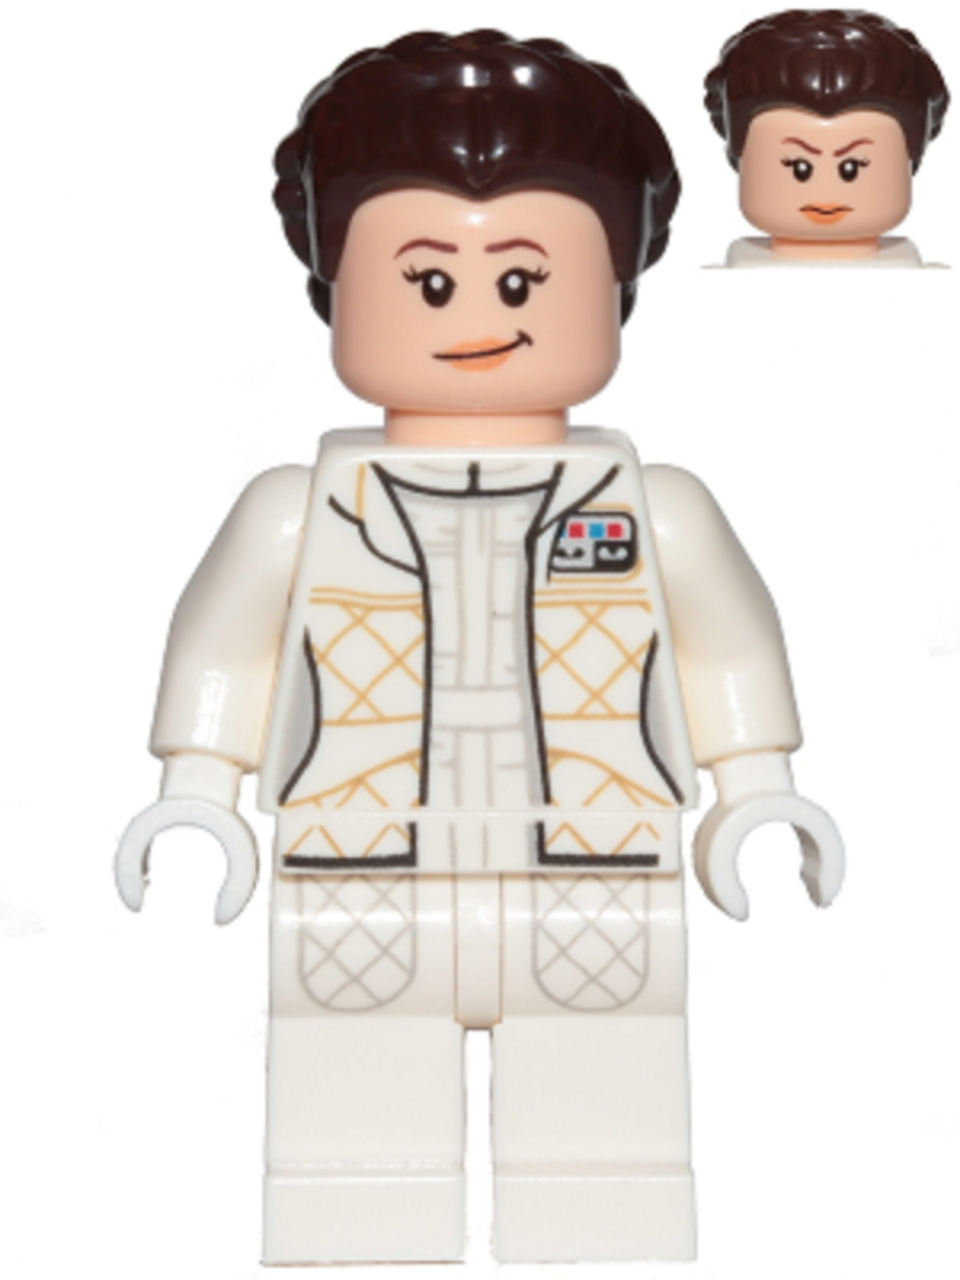 Princess Leia minifigure  *NEW* from set 75203 LEGO Star Wars